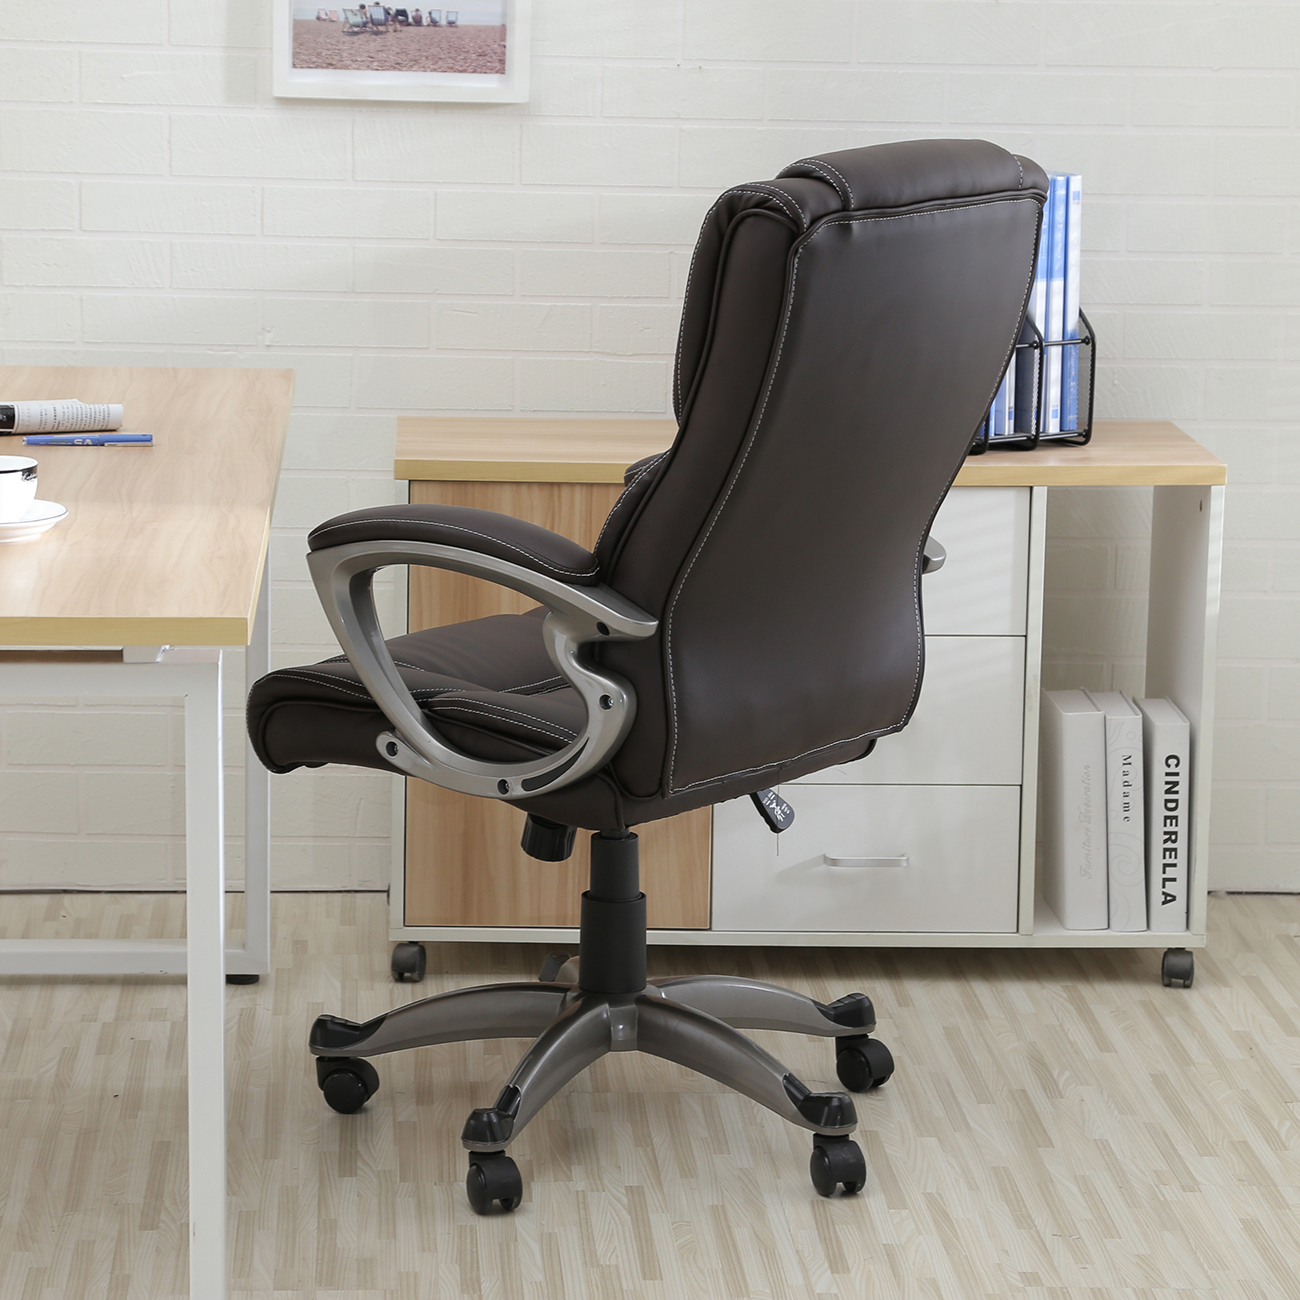 executive office chair high-back task ergonomic computer desk